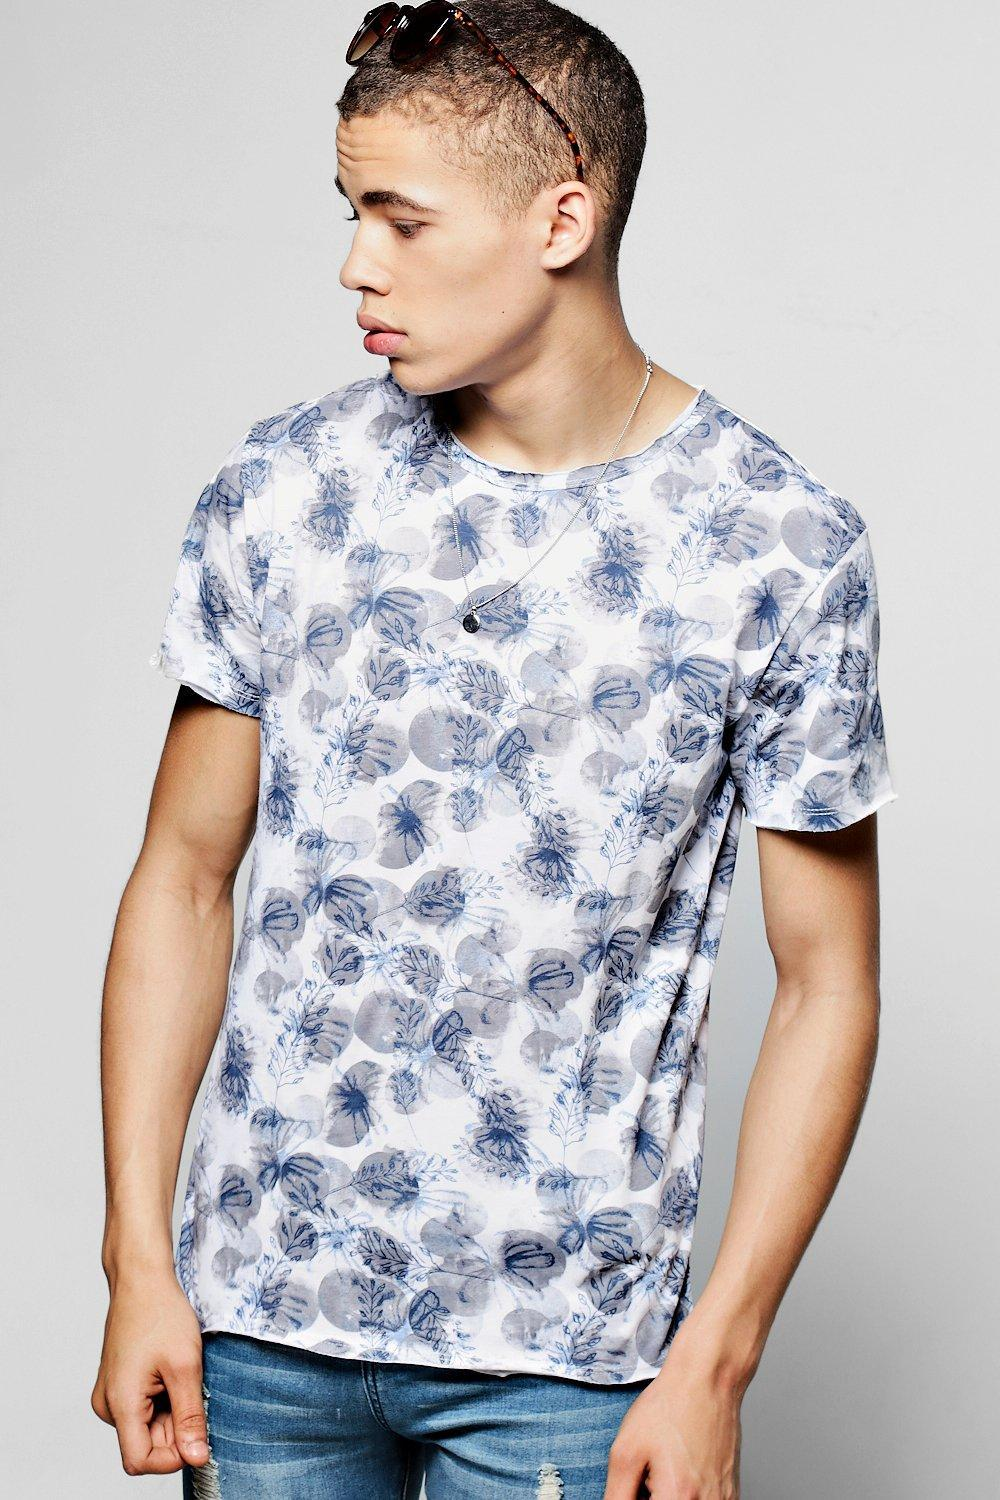 0e29f18da4e Boohoo All Over Floral And Leaf Print T-shirt in Blue for Men - Lyst